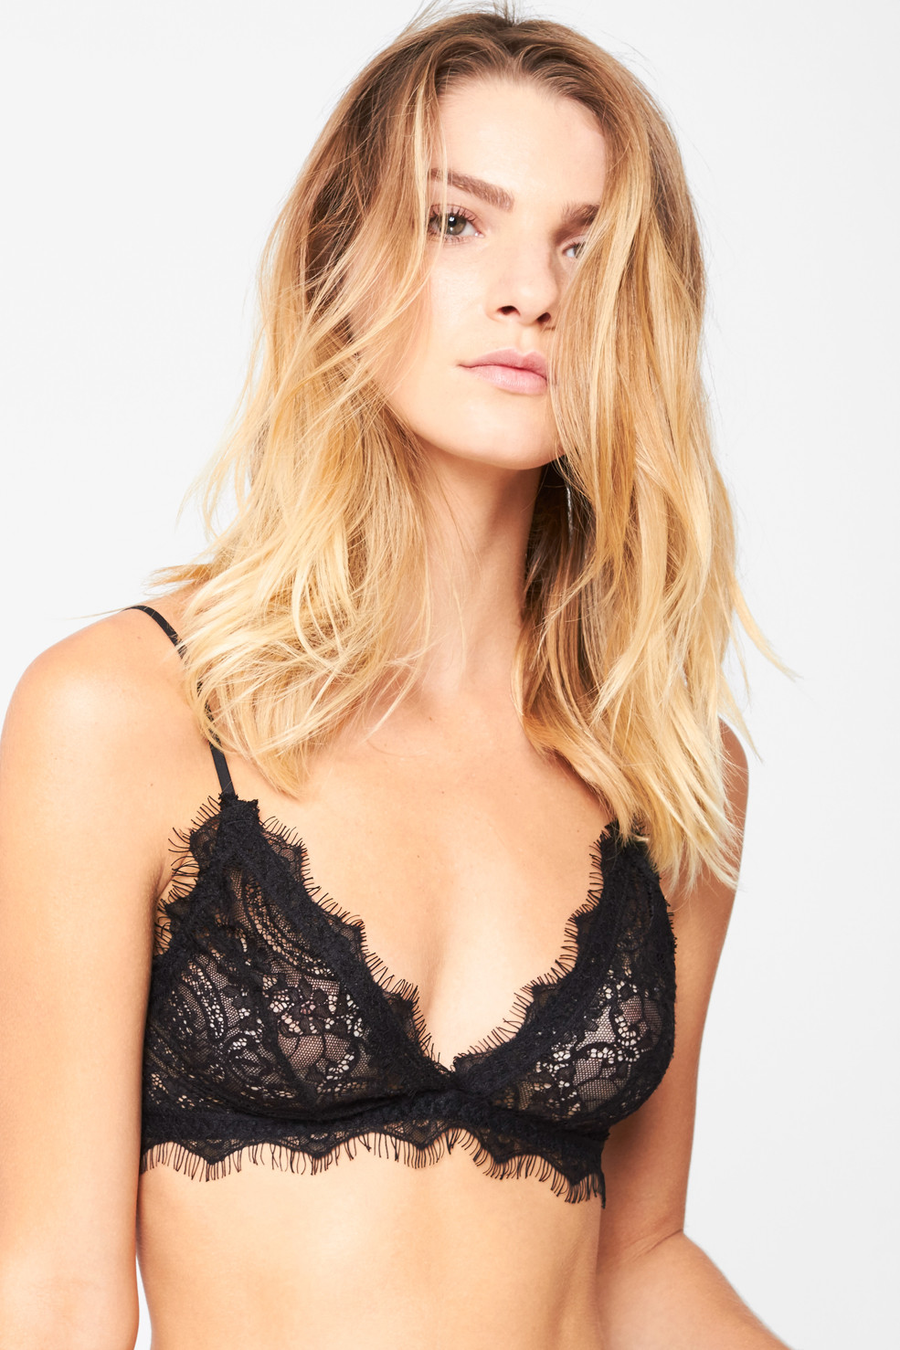 Lace Bra w/ Trim - Black - Pavilion